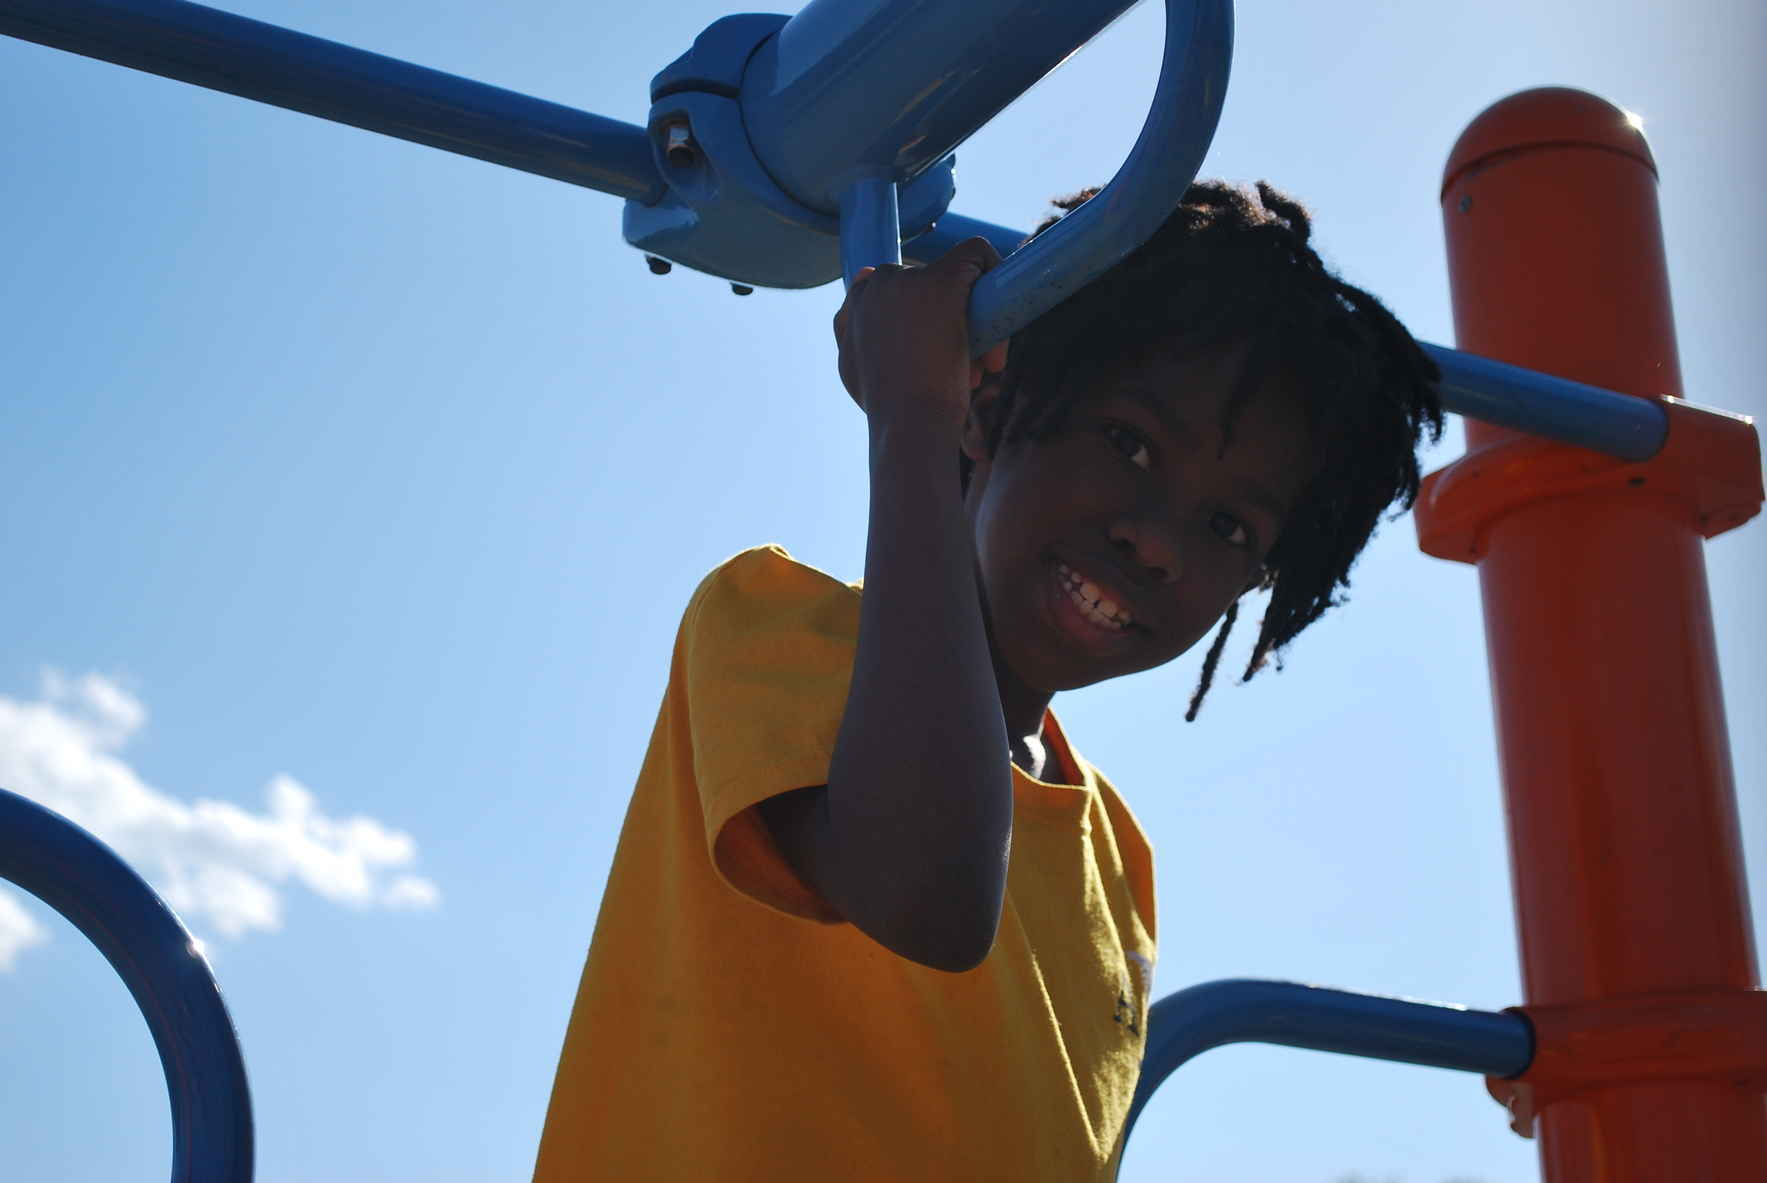 Donate to help inner city youth excel in YOUR community image